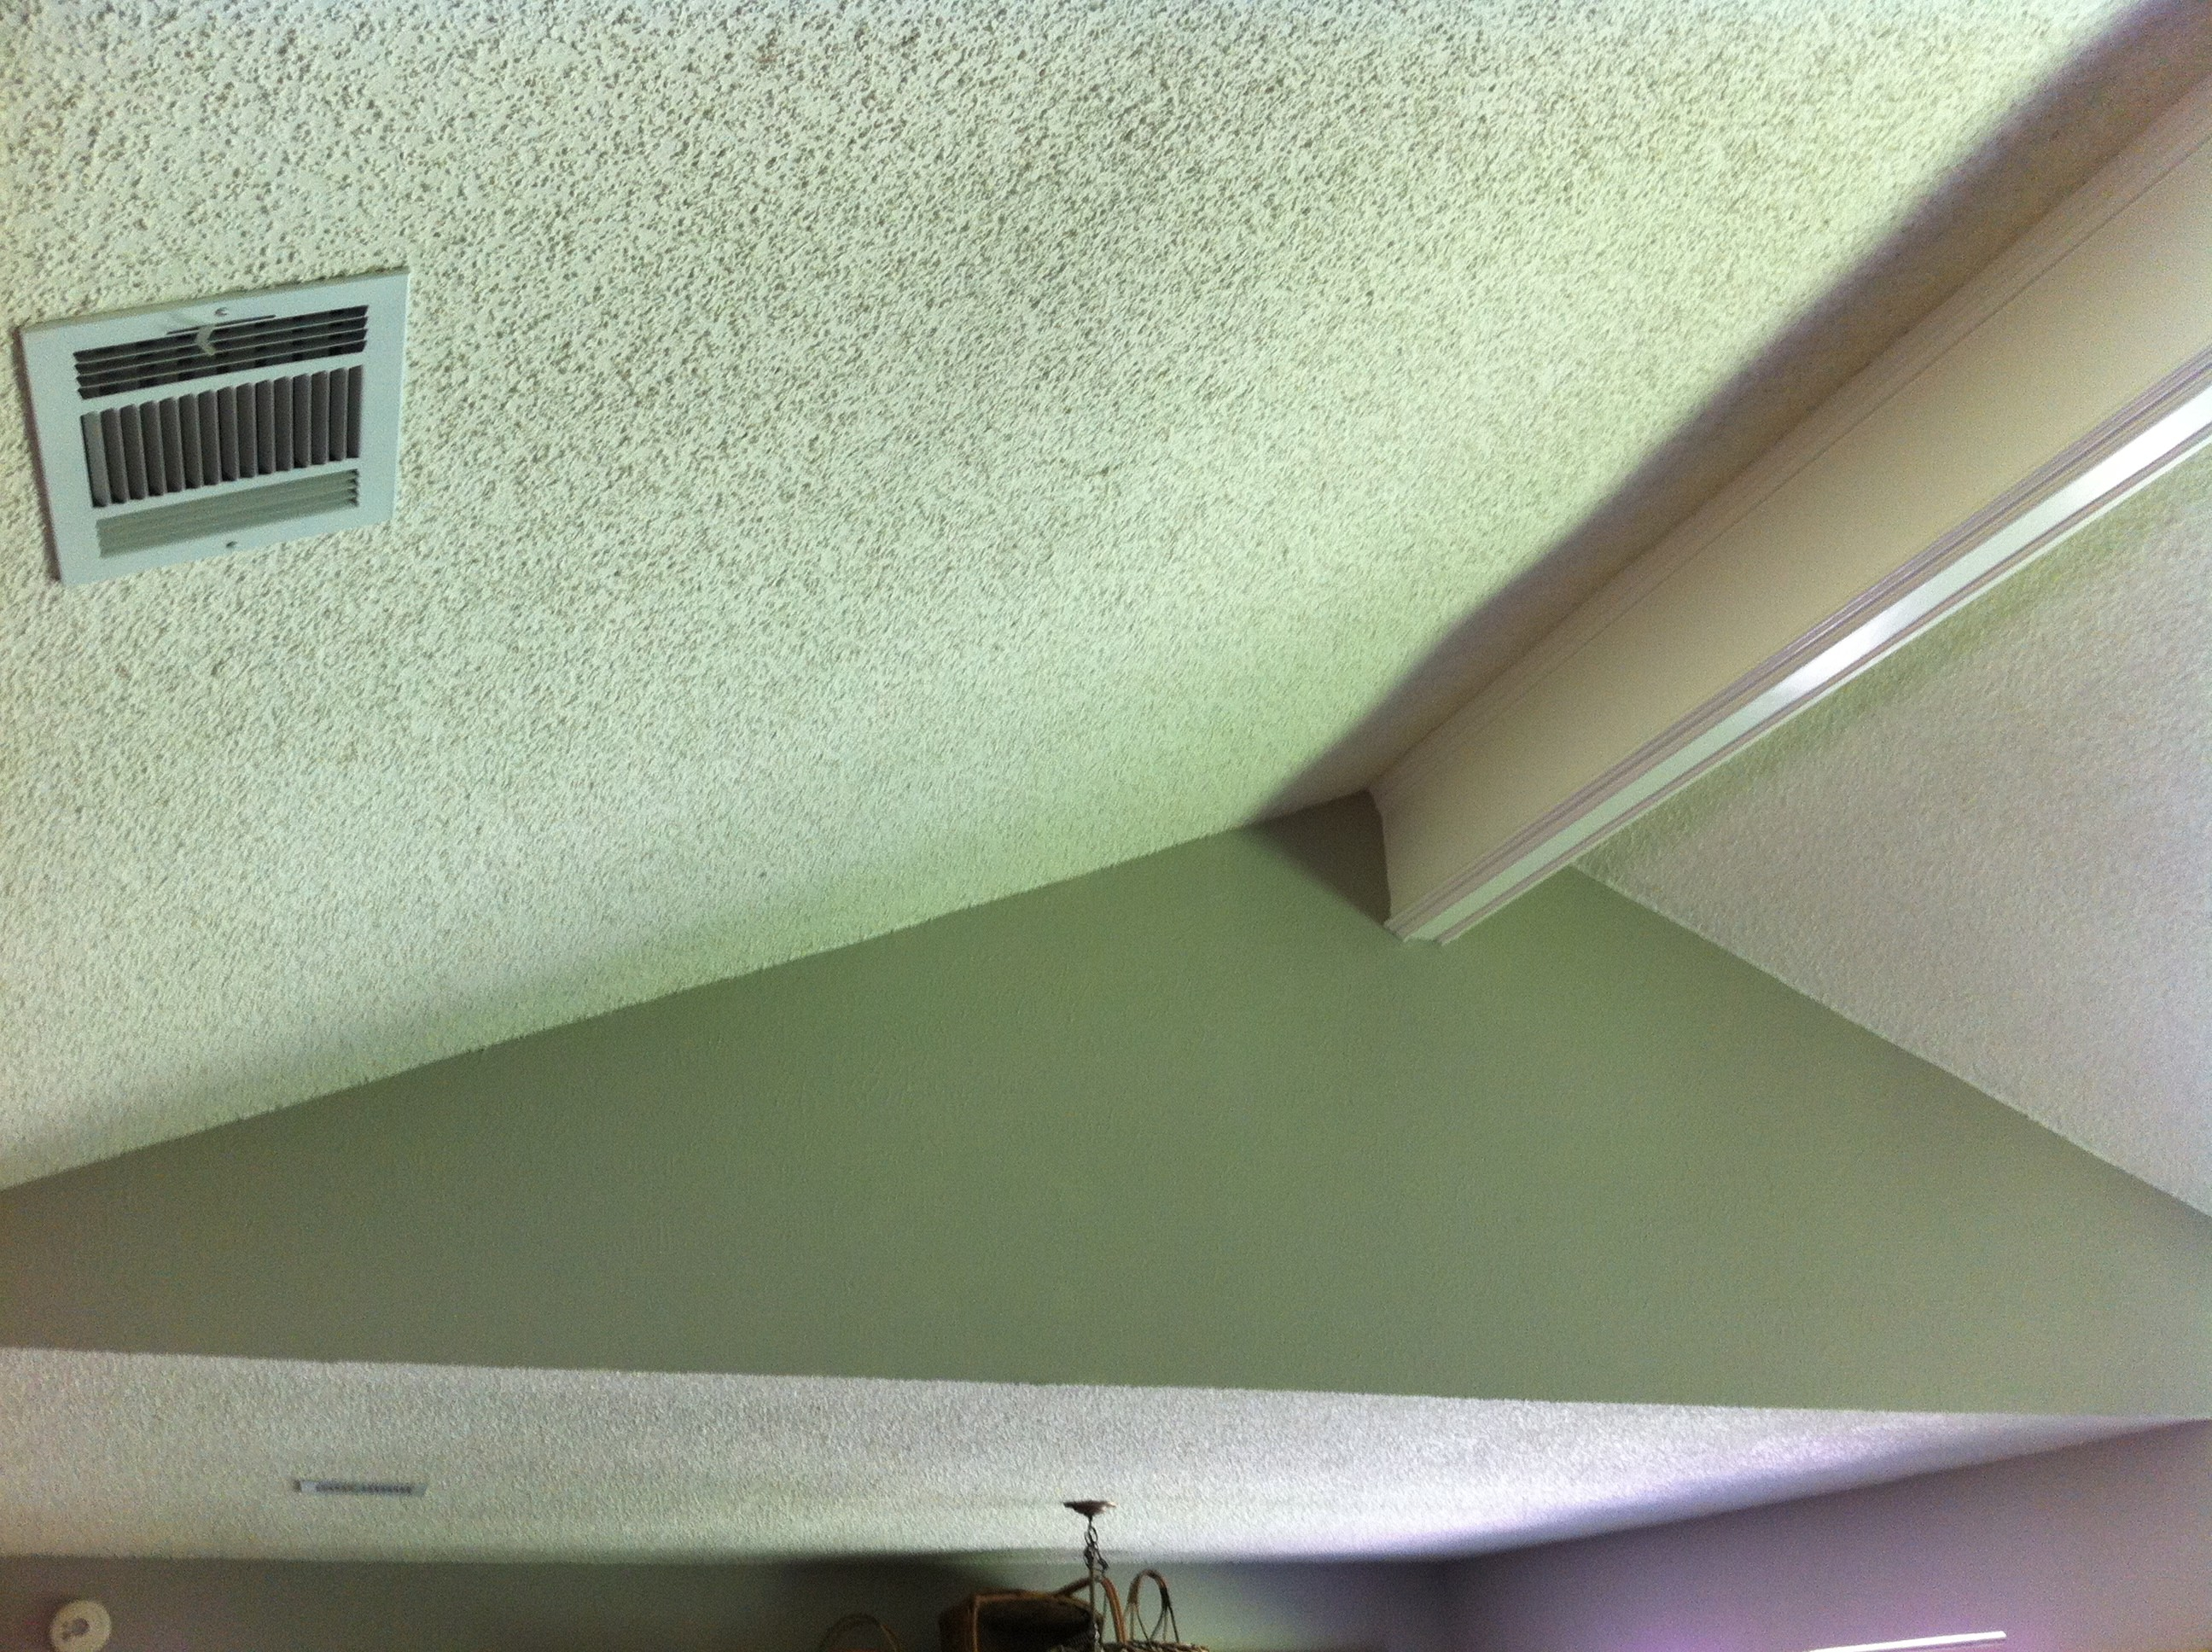 Popcorn Ceilings Are They Really So